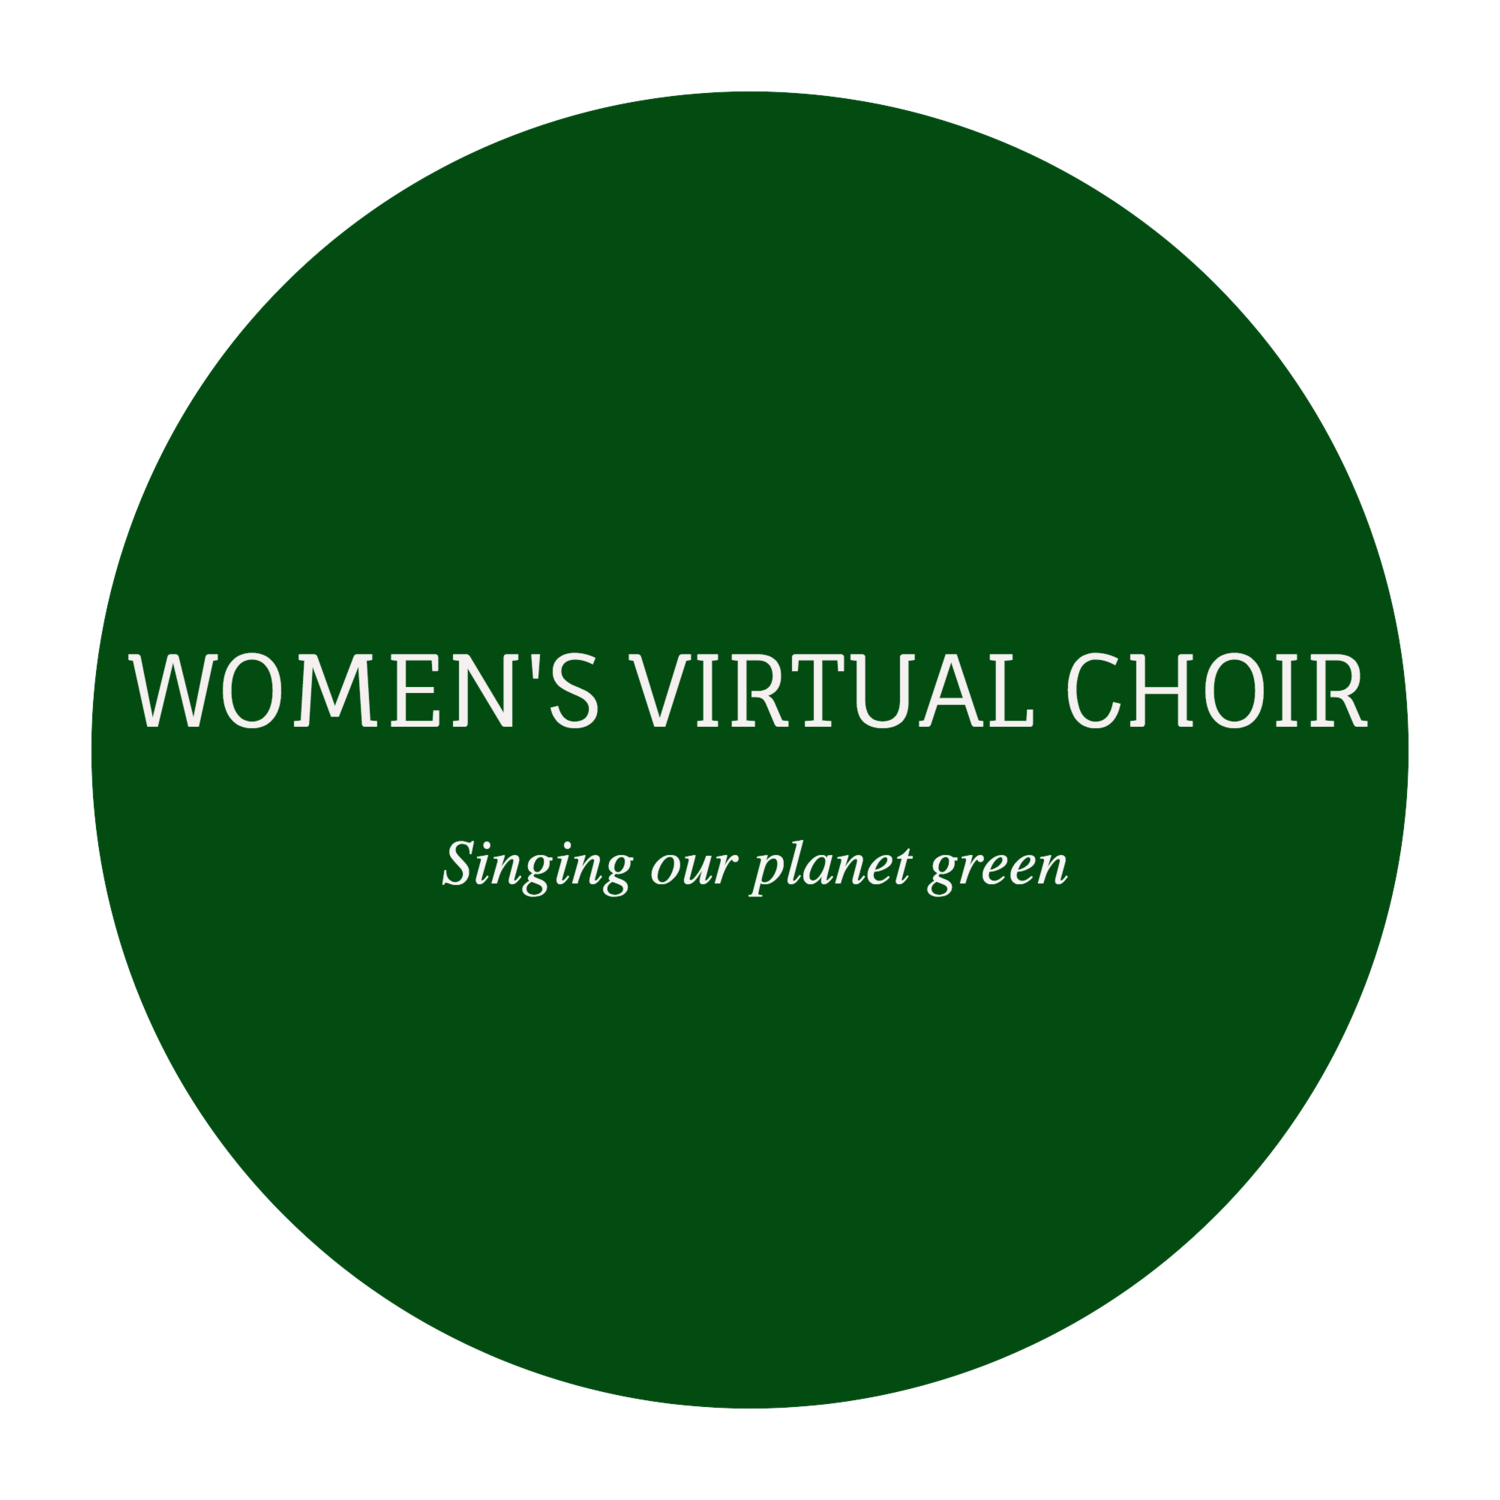 Women's Virtual Choir